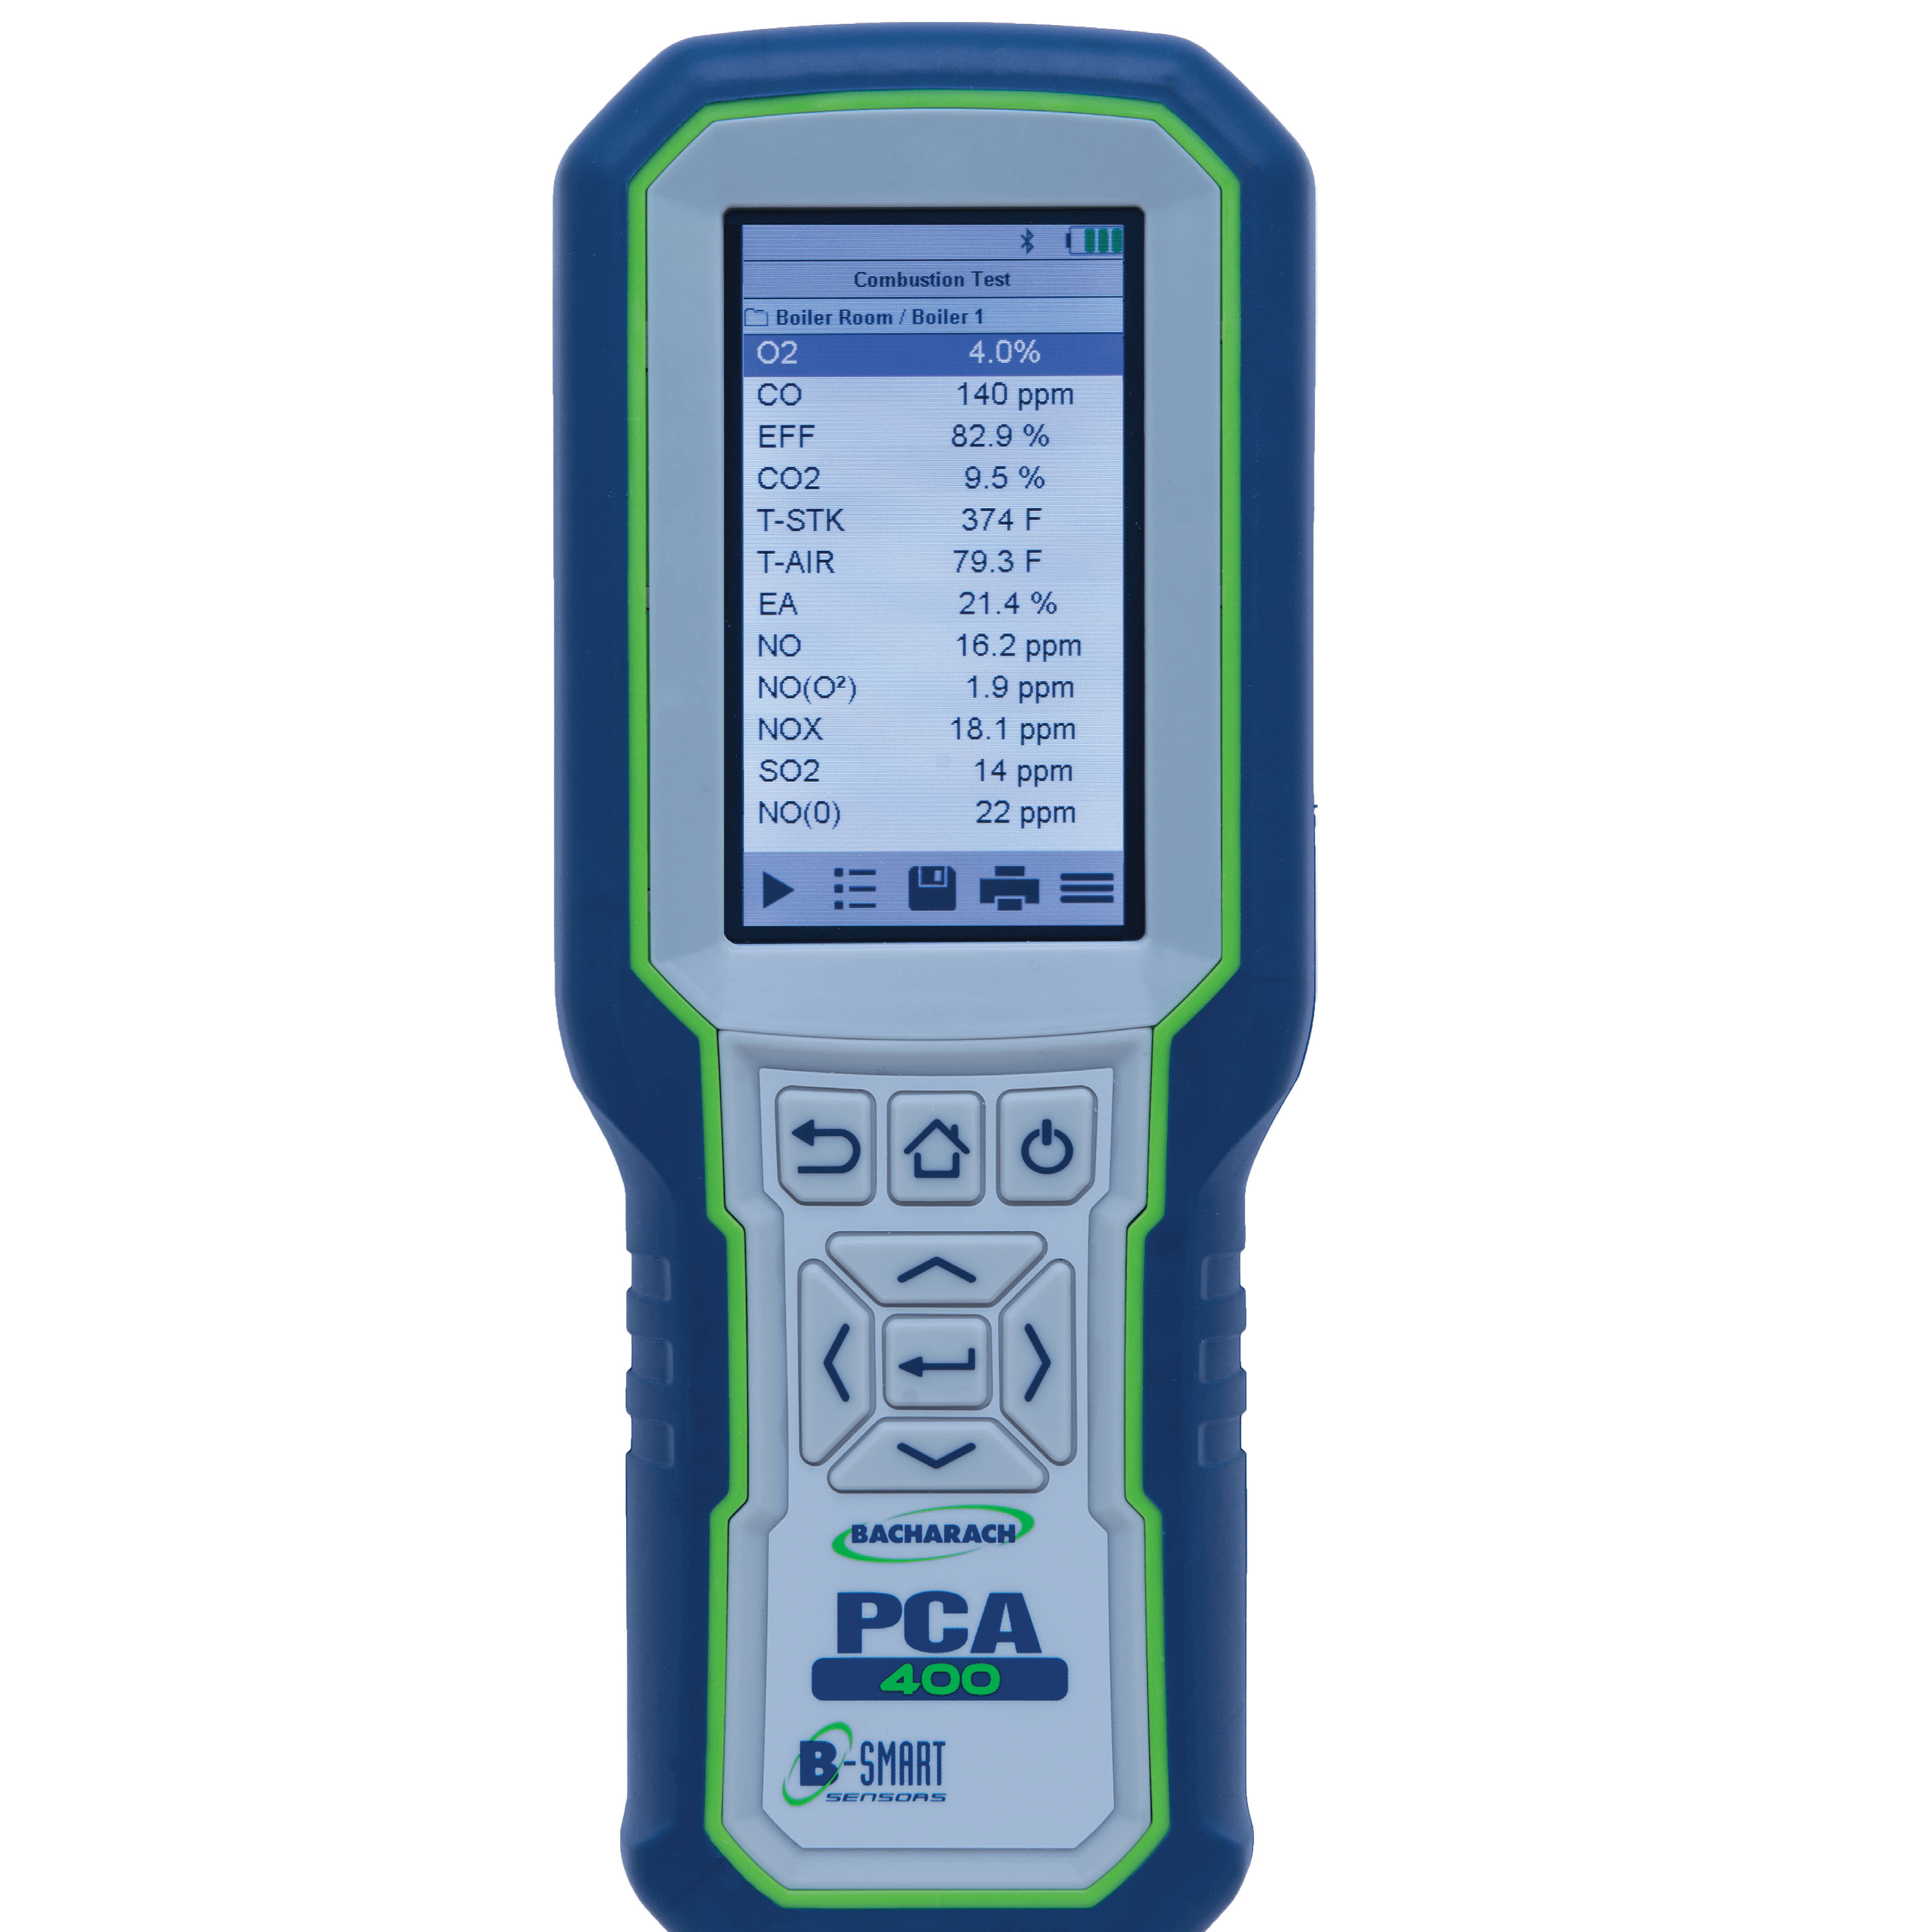 Bacharach PCA 400 Combustion and Emissions Analyzer for Commercial and Industrial Applications